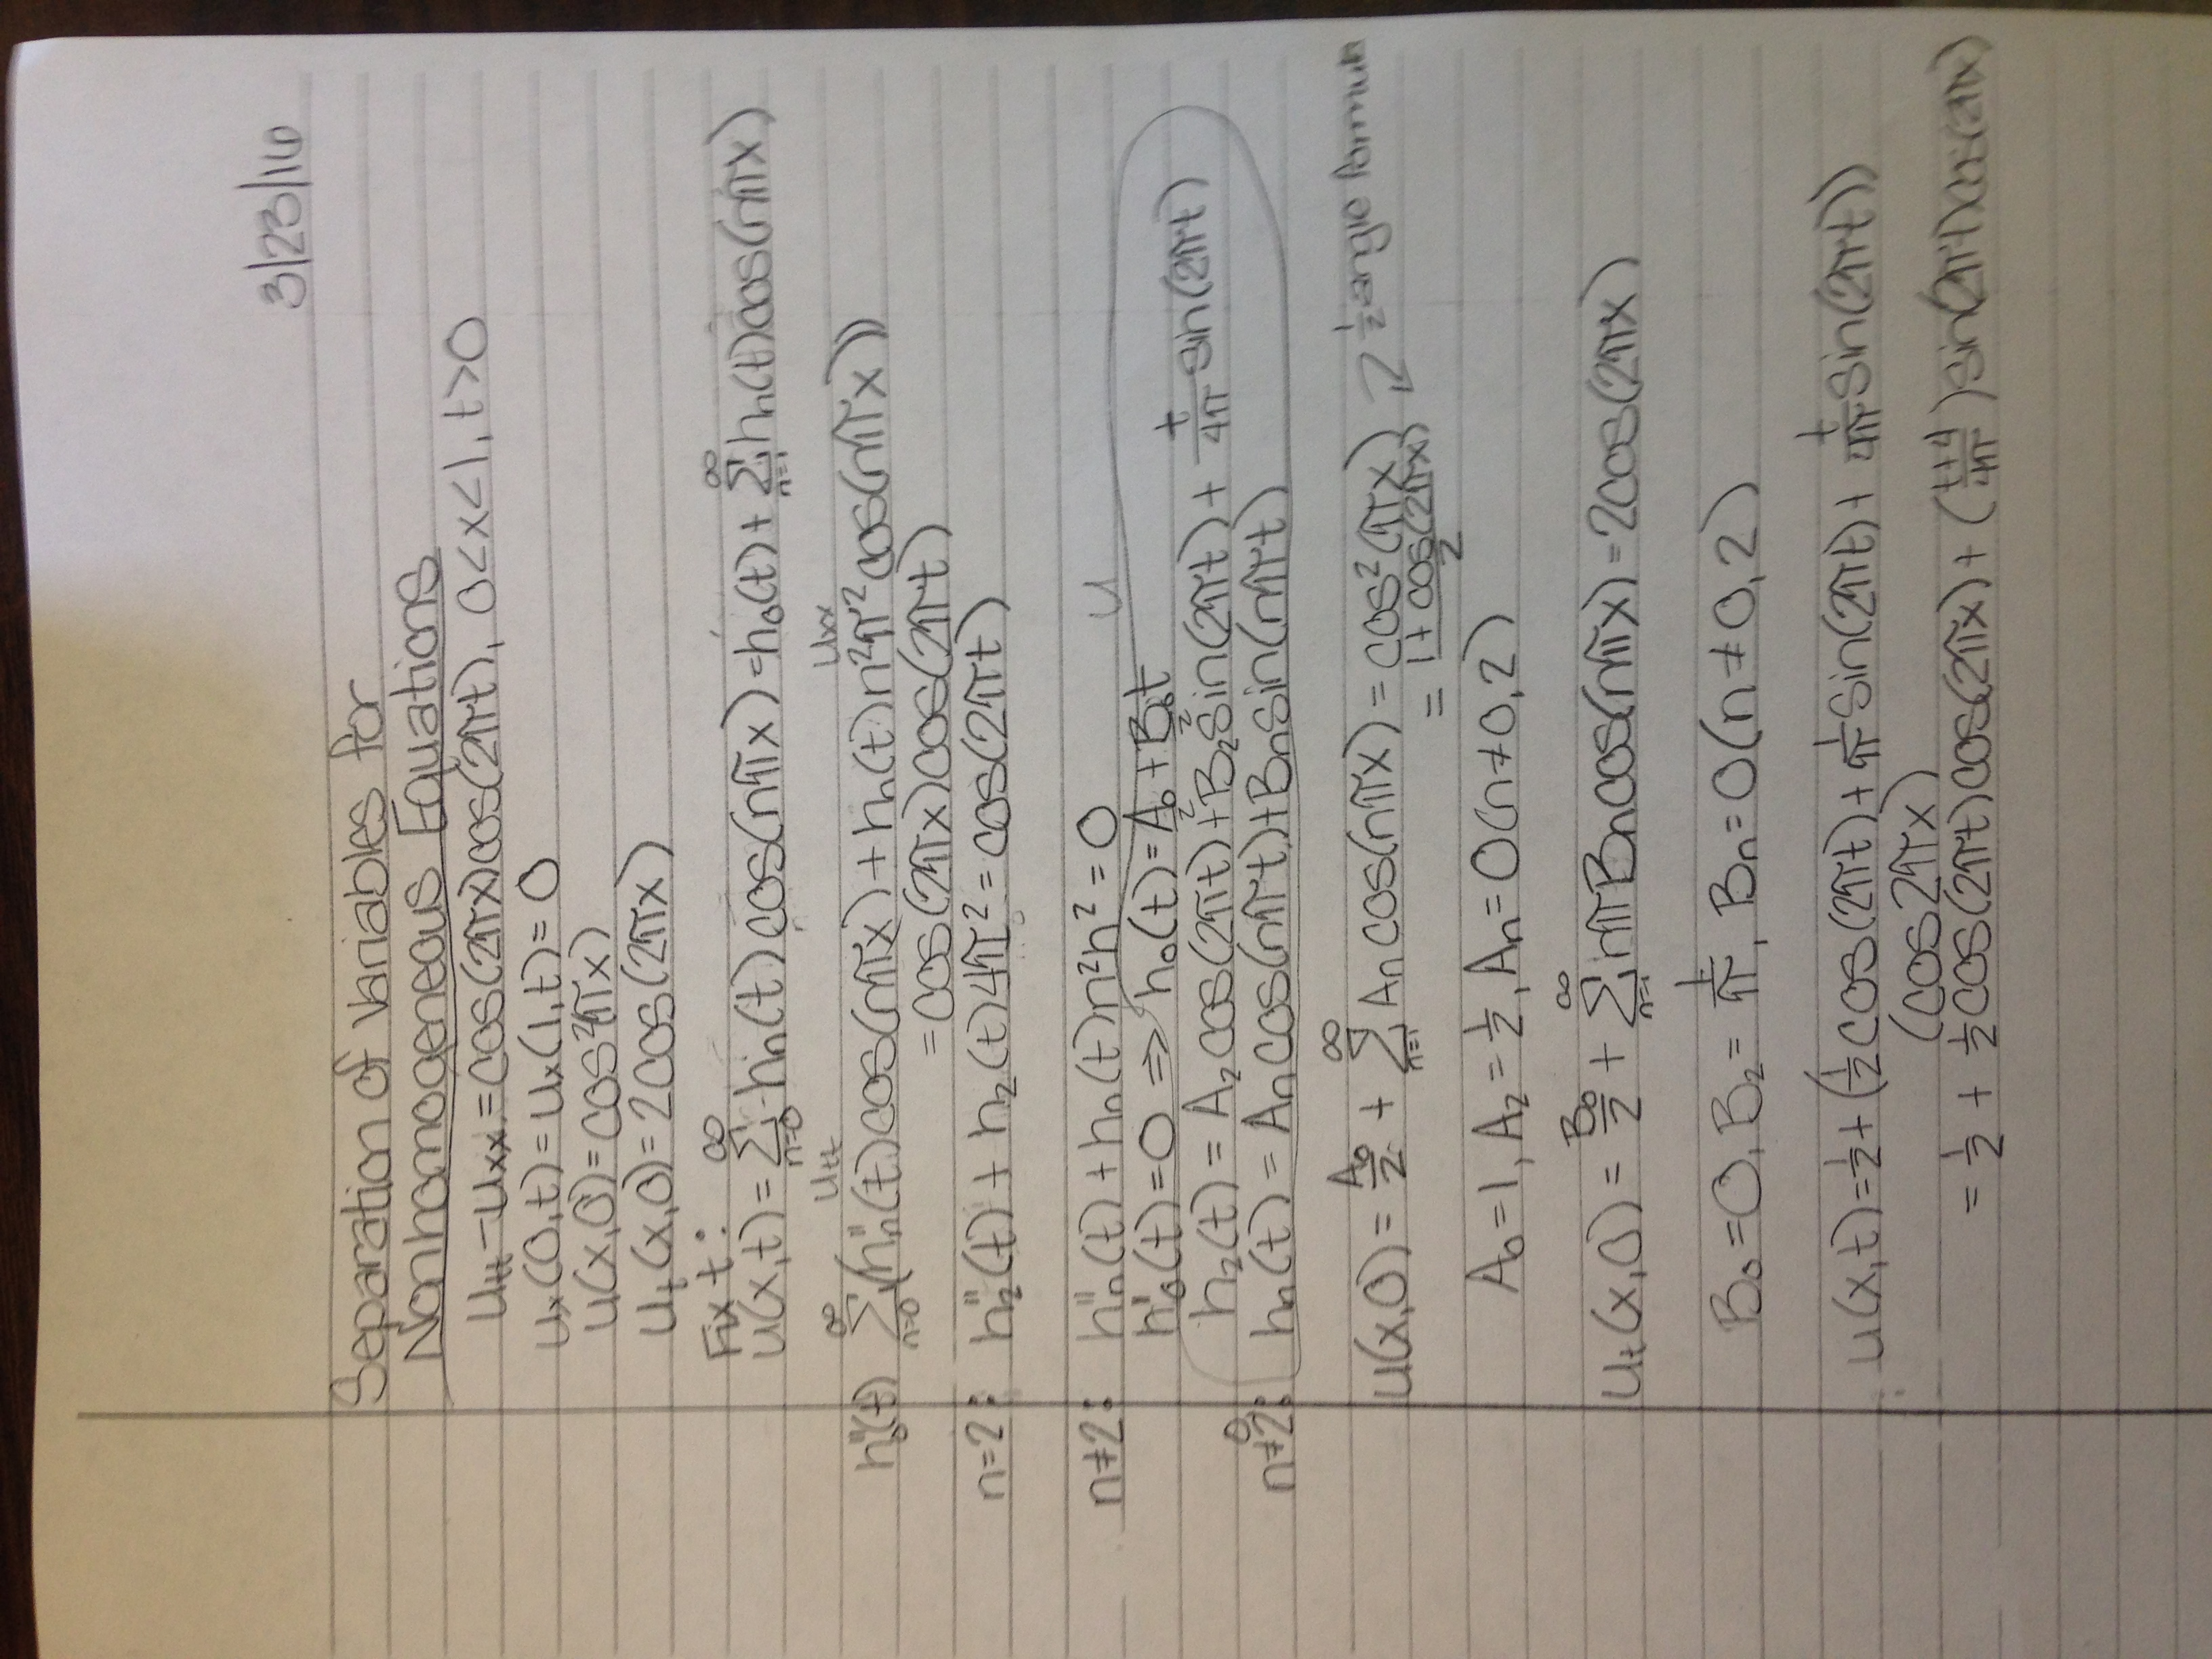 differential equations by separation of variables homework